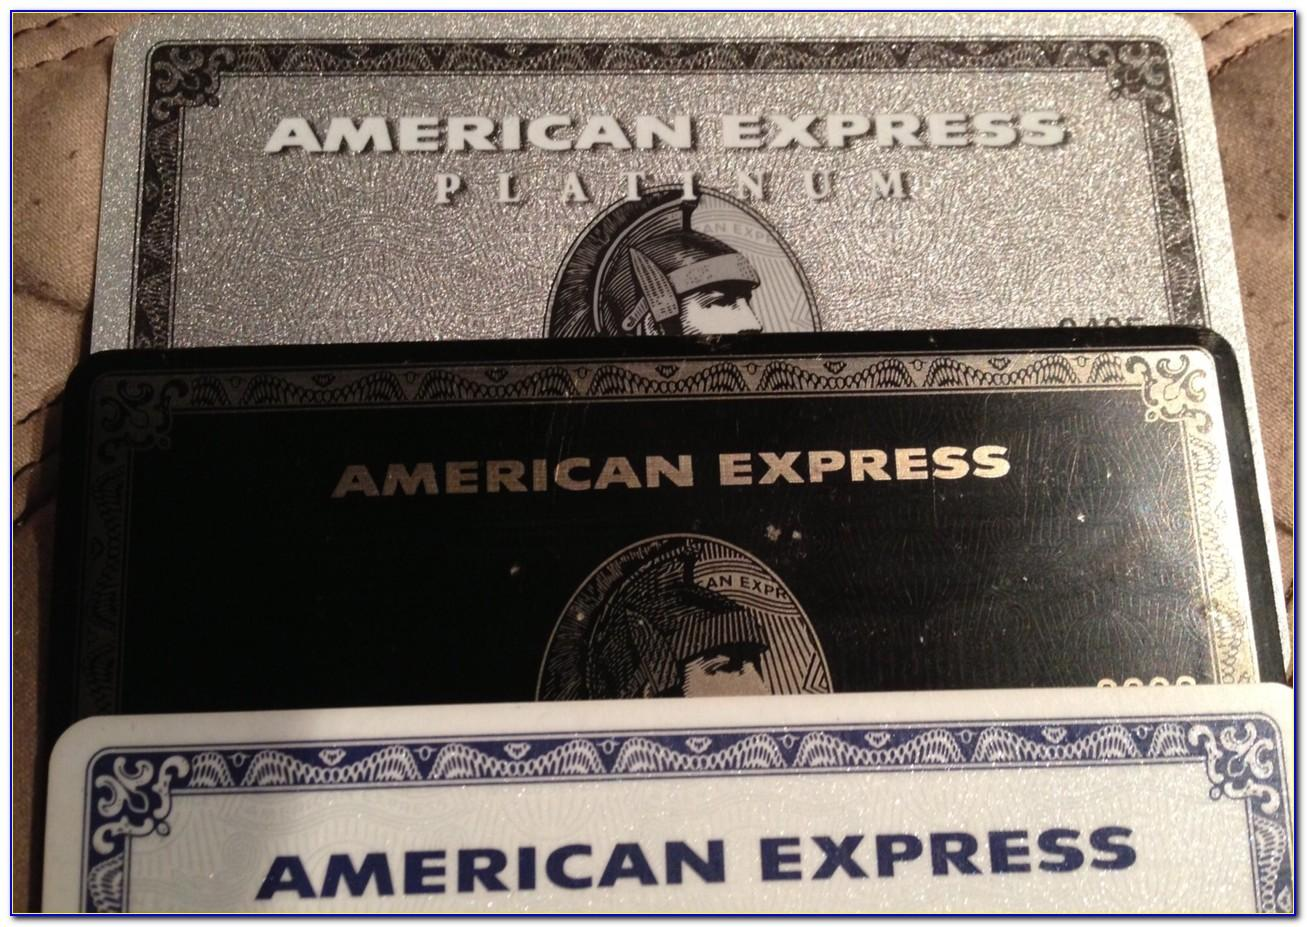 Amex Business Platinum Additional Card Fee